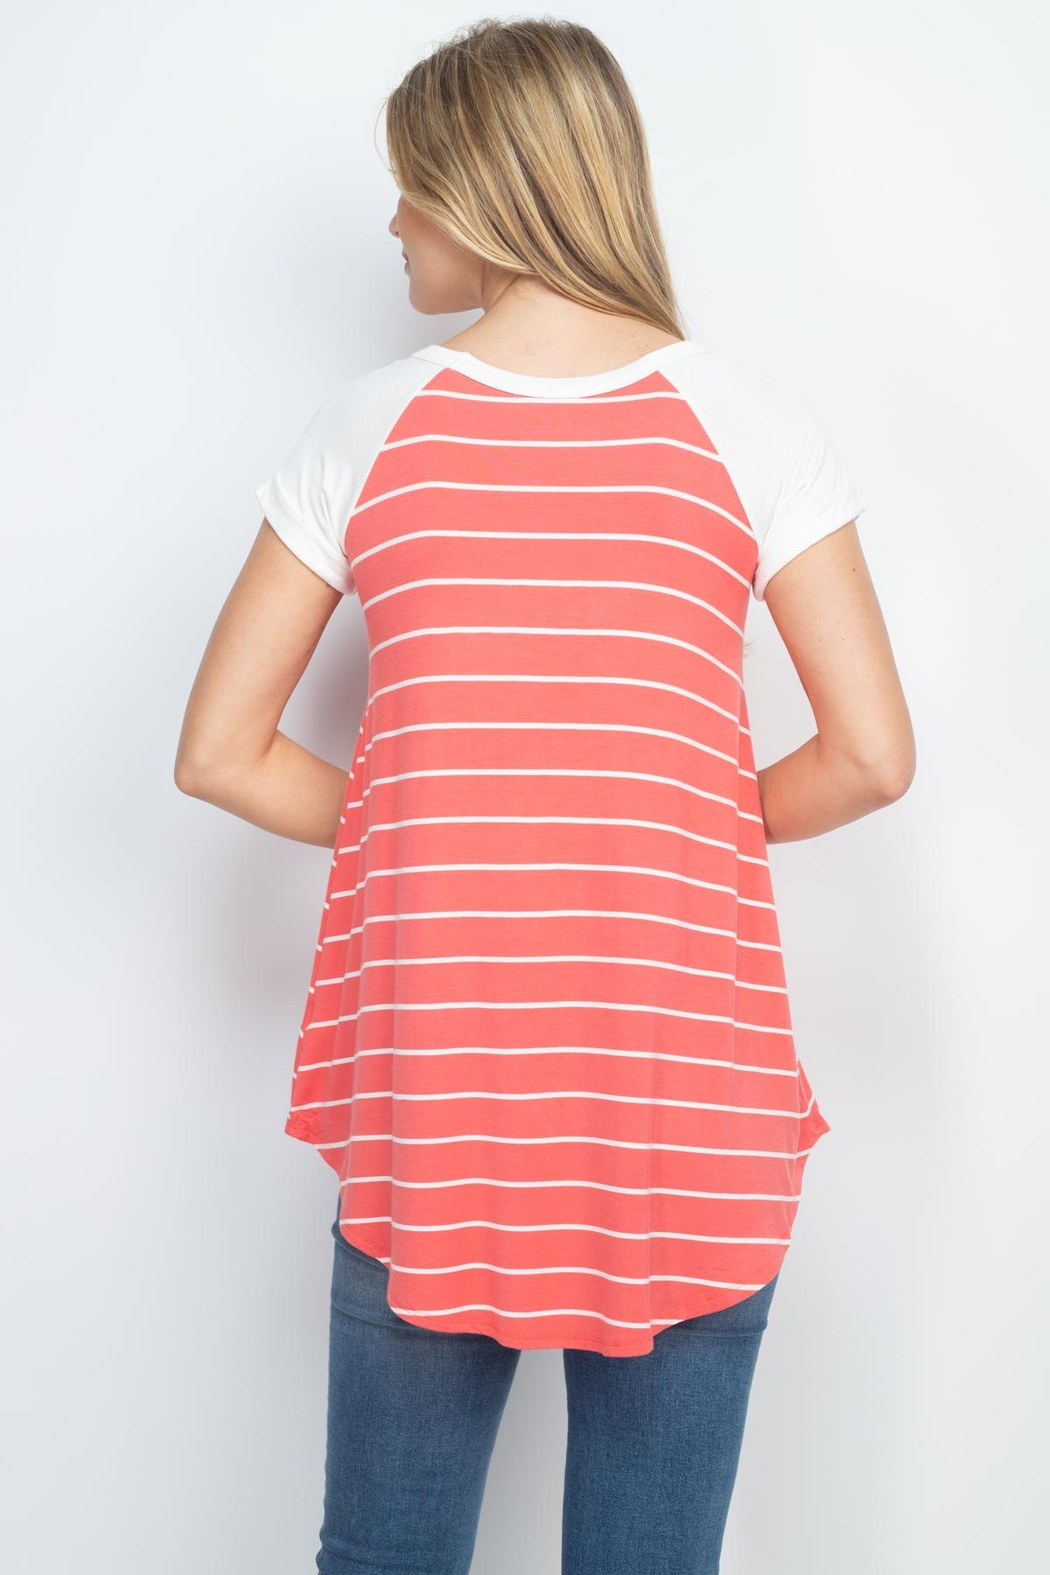 Riah Fashion Coral Stripes Top - Front Full Image